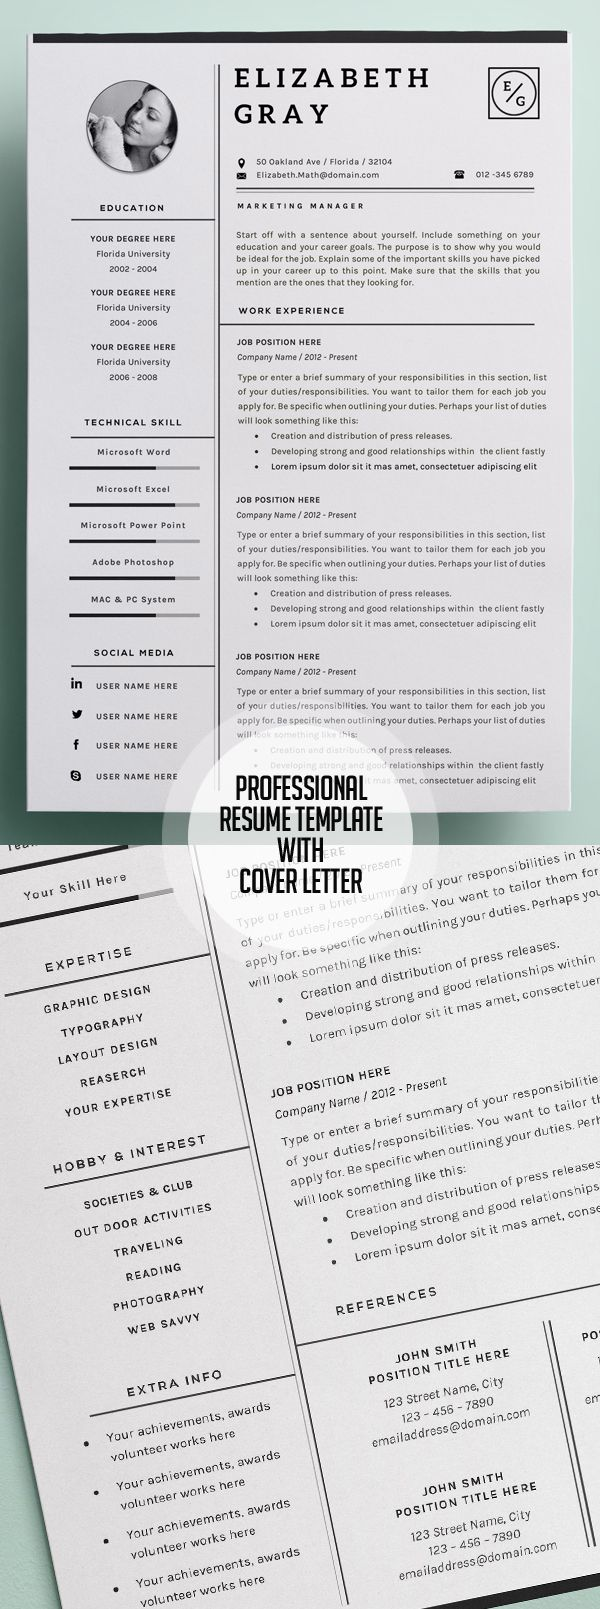 Picnictoimpeachus  Wonderful  Resume Ideas On Pinterest  Resume Resume Templates And  With Extraordinary Professional And Modern Resume Template With Page Cover Cvtemplate With Charming Best Resume Formats Also Business Owner Resume In Addition Free Templates For Resumes And System Administrator Resume As Well As Resume Template Pdf Additionally Resume For Free From Pinterestcom With Picnictoimpeachus  Extraordinary  Resume Ideas On Pinterest  Resume Resume Templates And  With Charming Professional And Modern Resume Template With Page Cover Cvtemplate And Wonderful Best Resume Formats Also Business Owner Resume In Addition Free Templates For Resumes From Pinterestcom